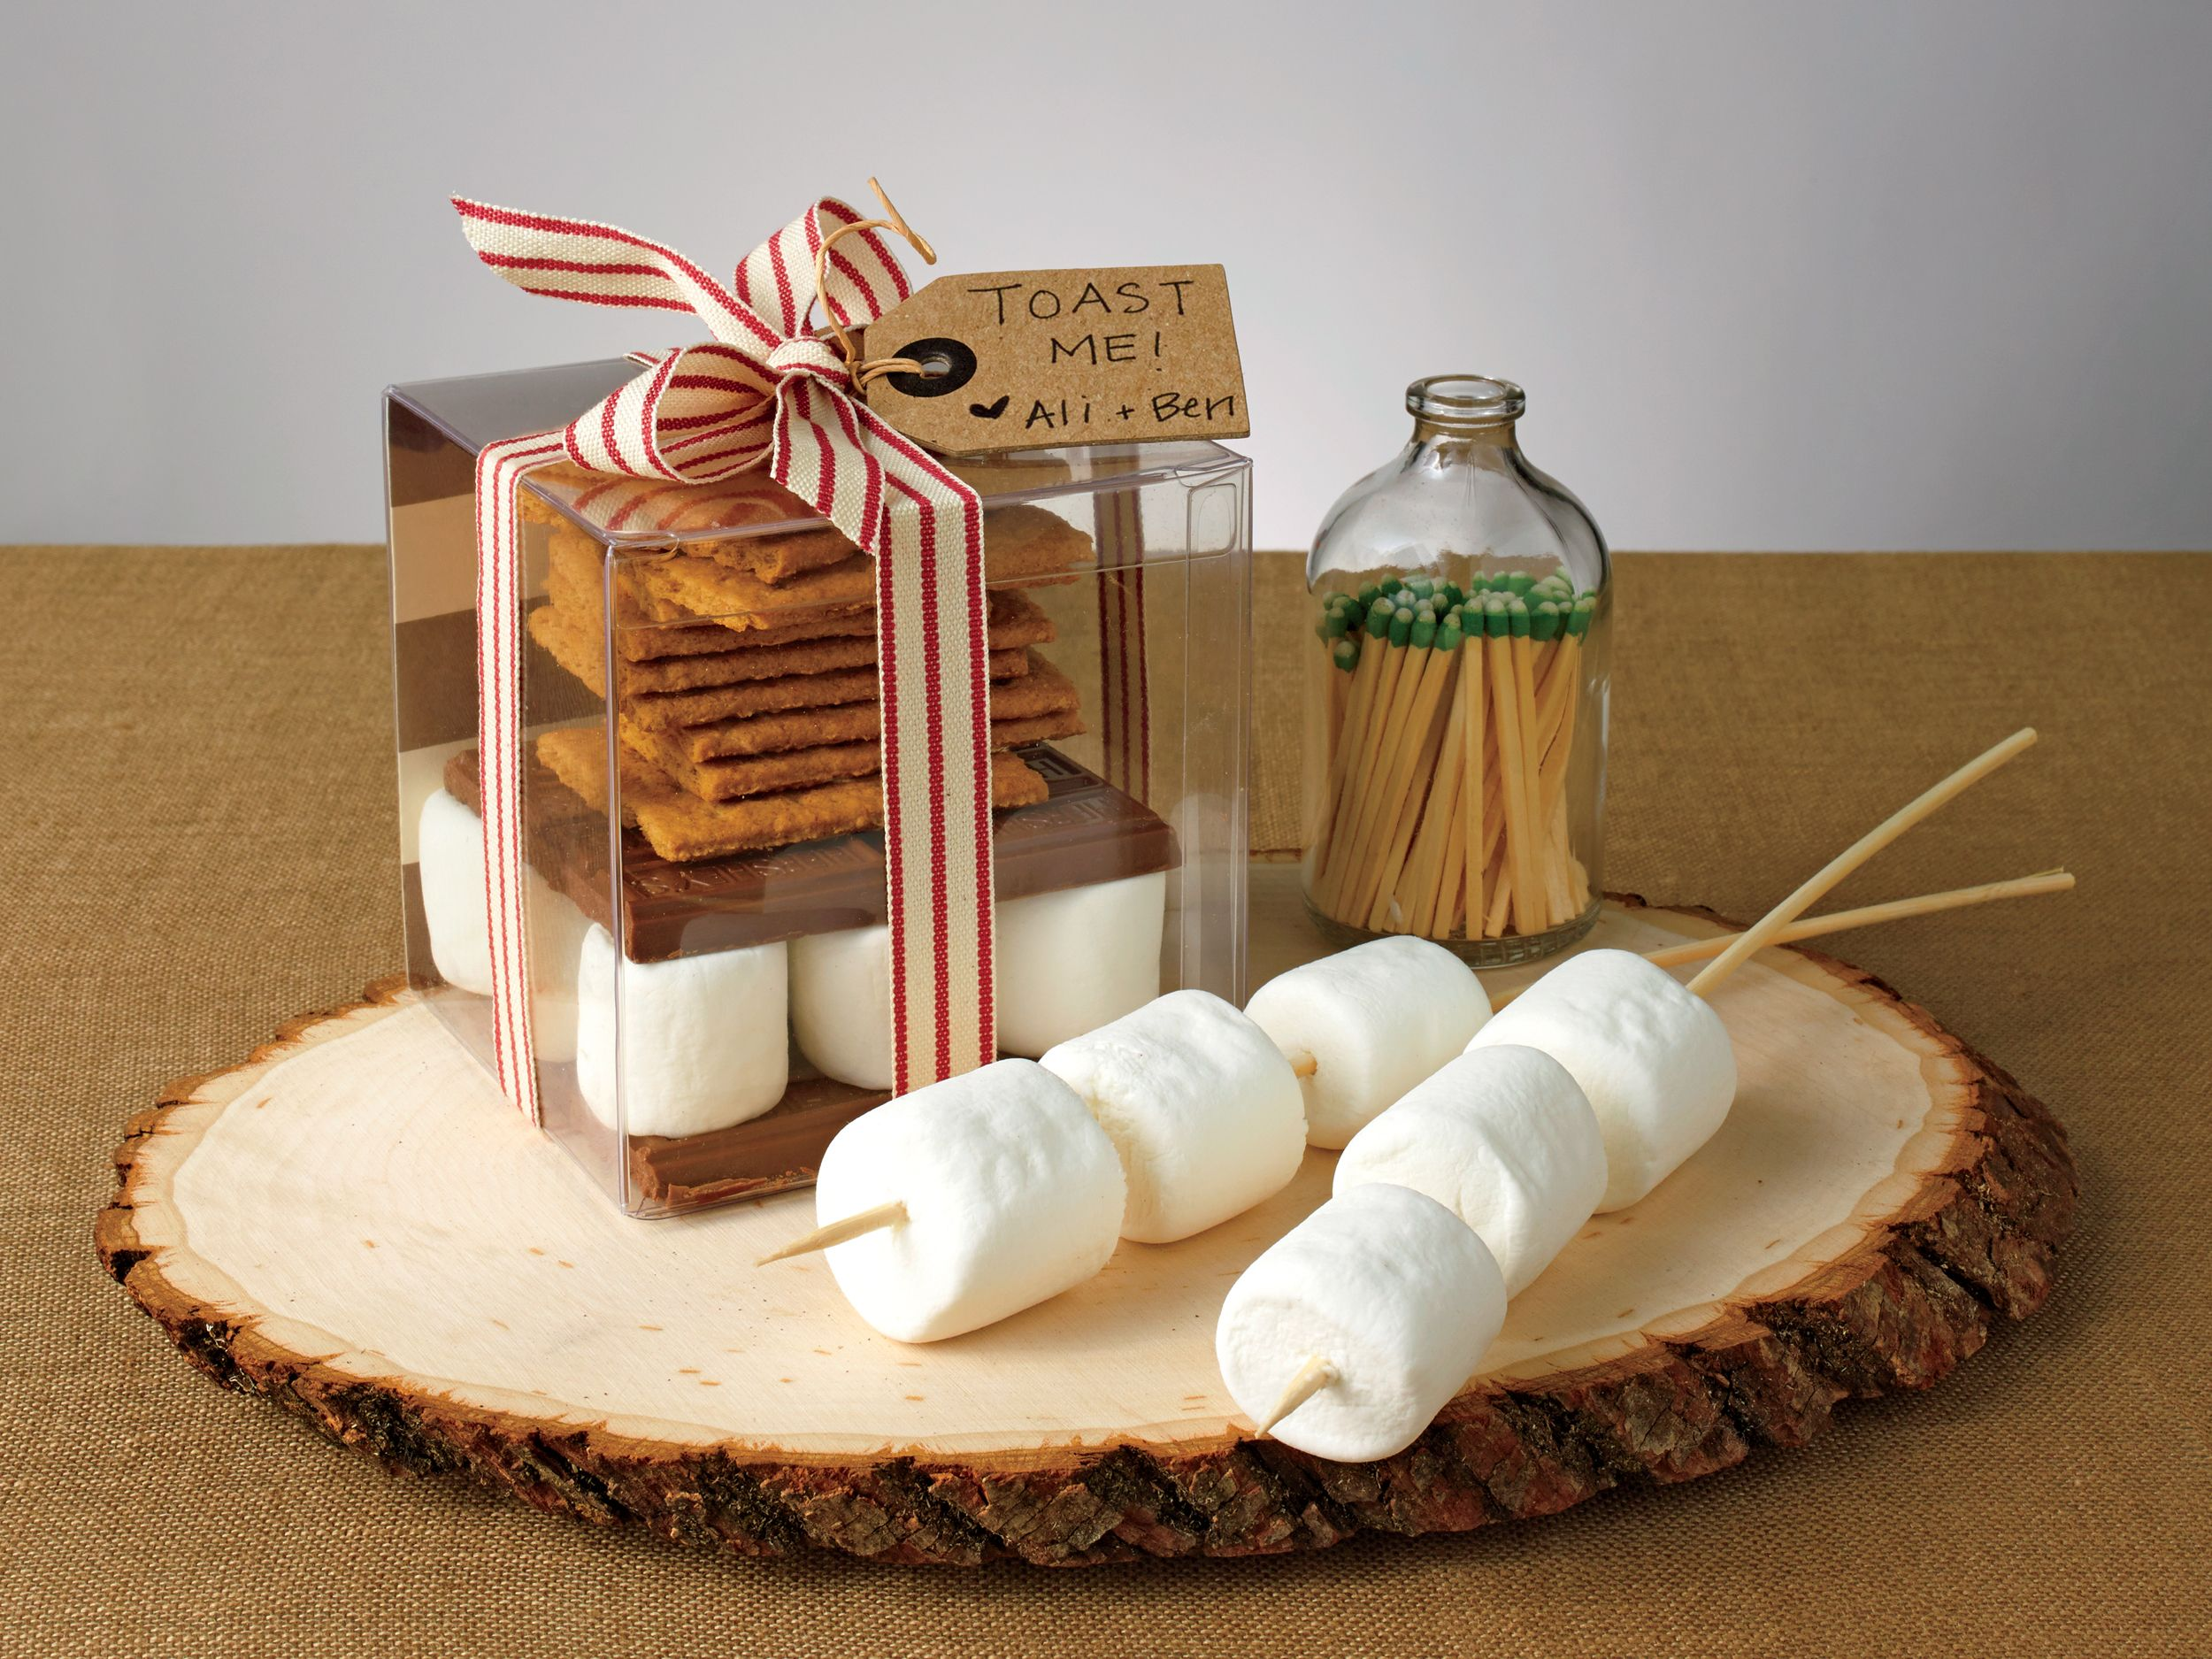 DIY This Smores Kit Wedding Favor In 4 Easy Steps